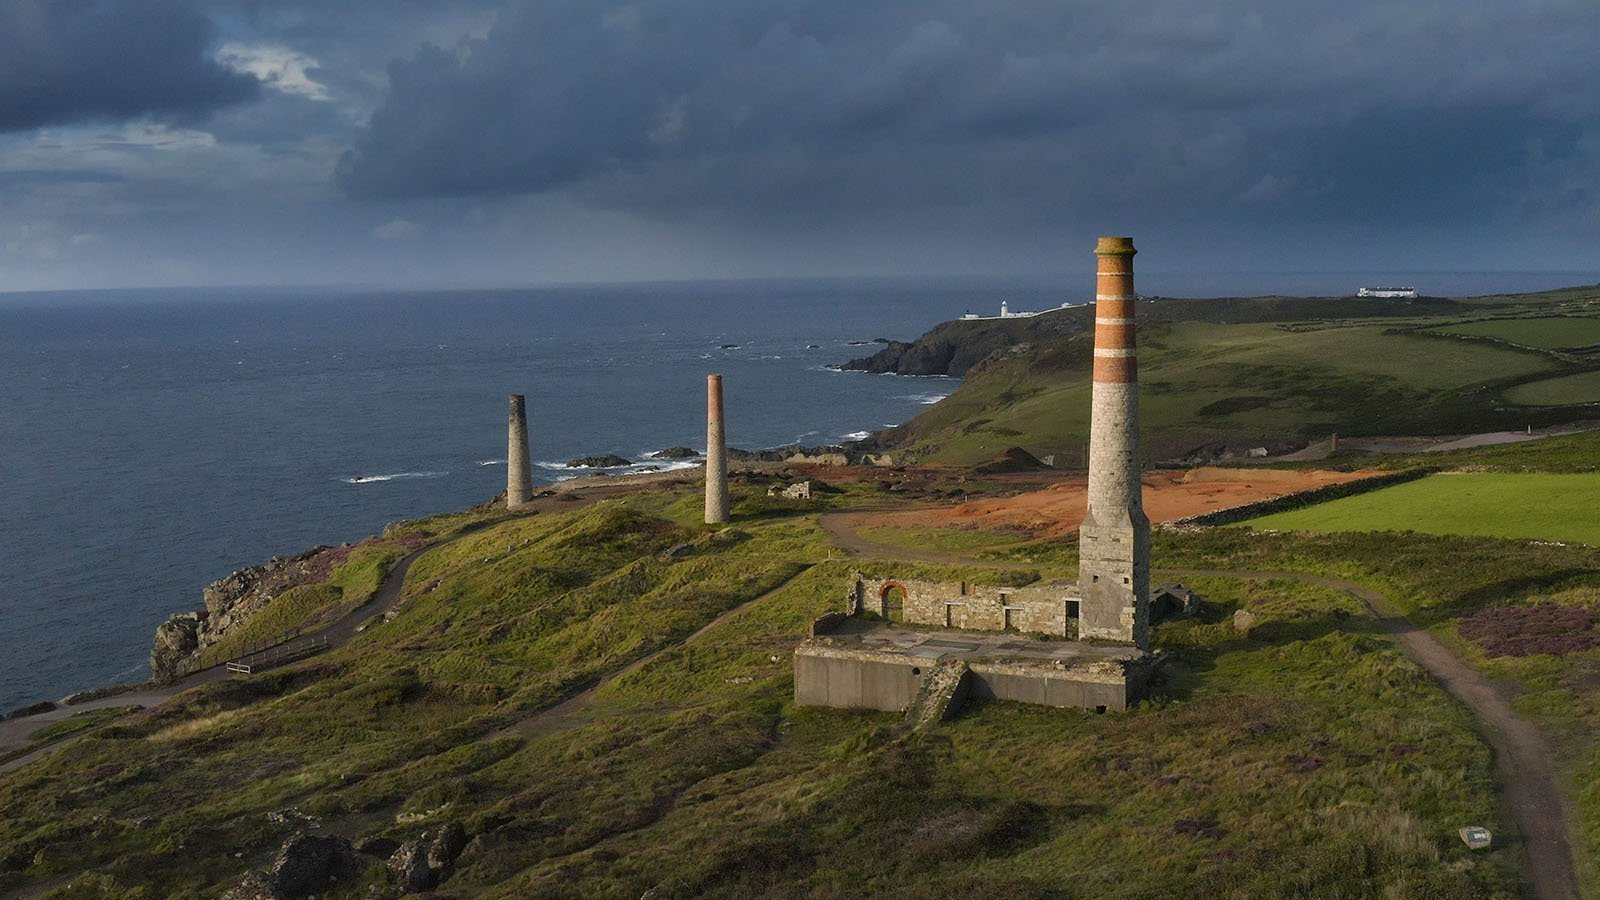 Britain's last tin mine could reopen as tech companies chase ethical metals